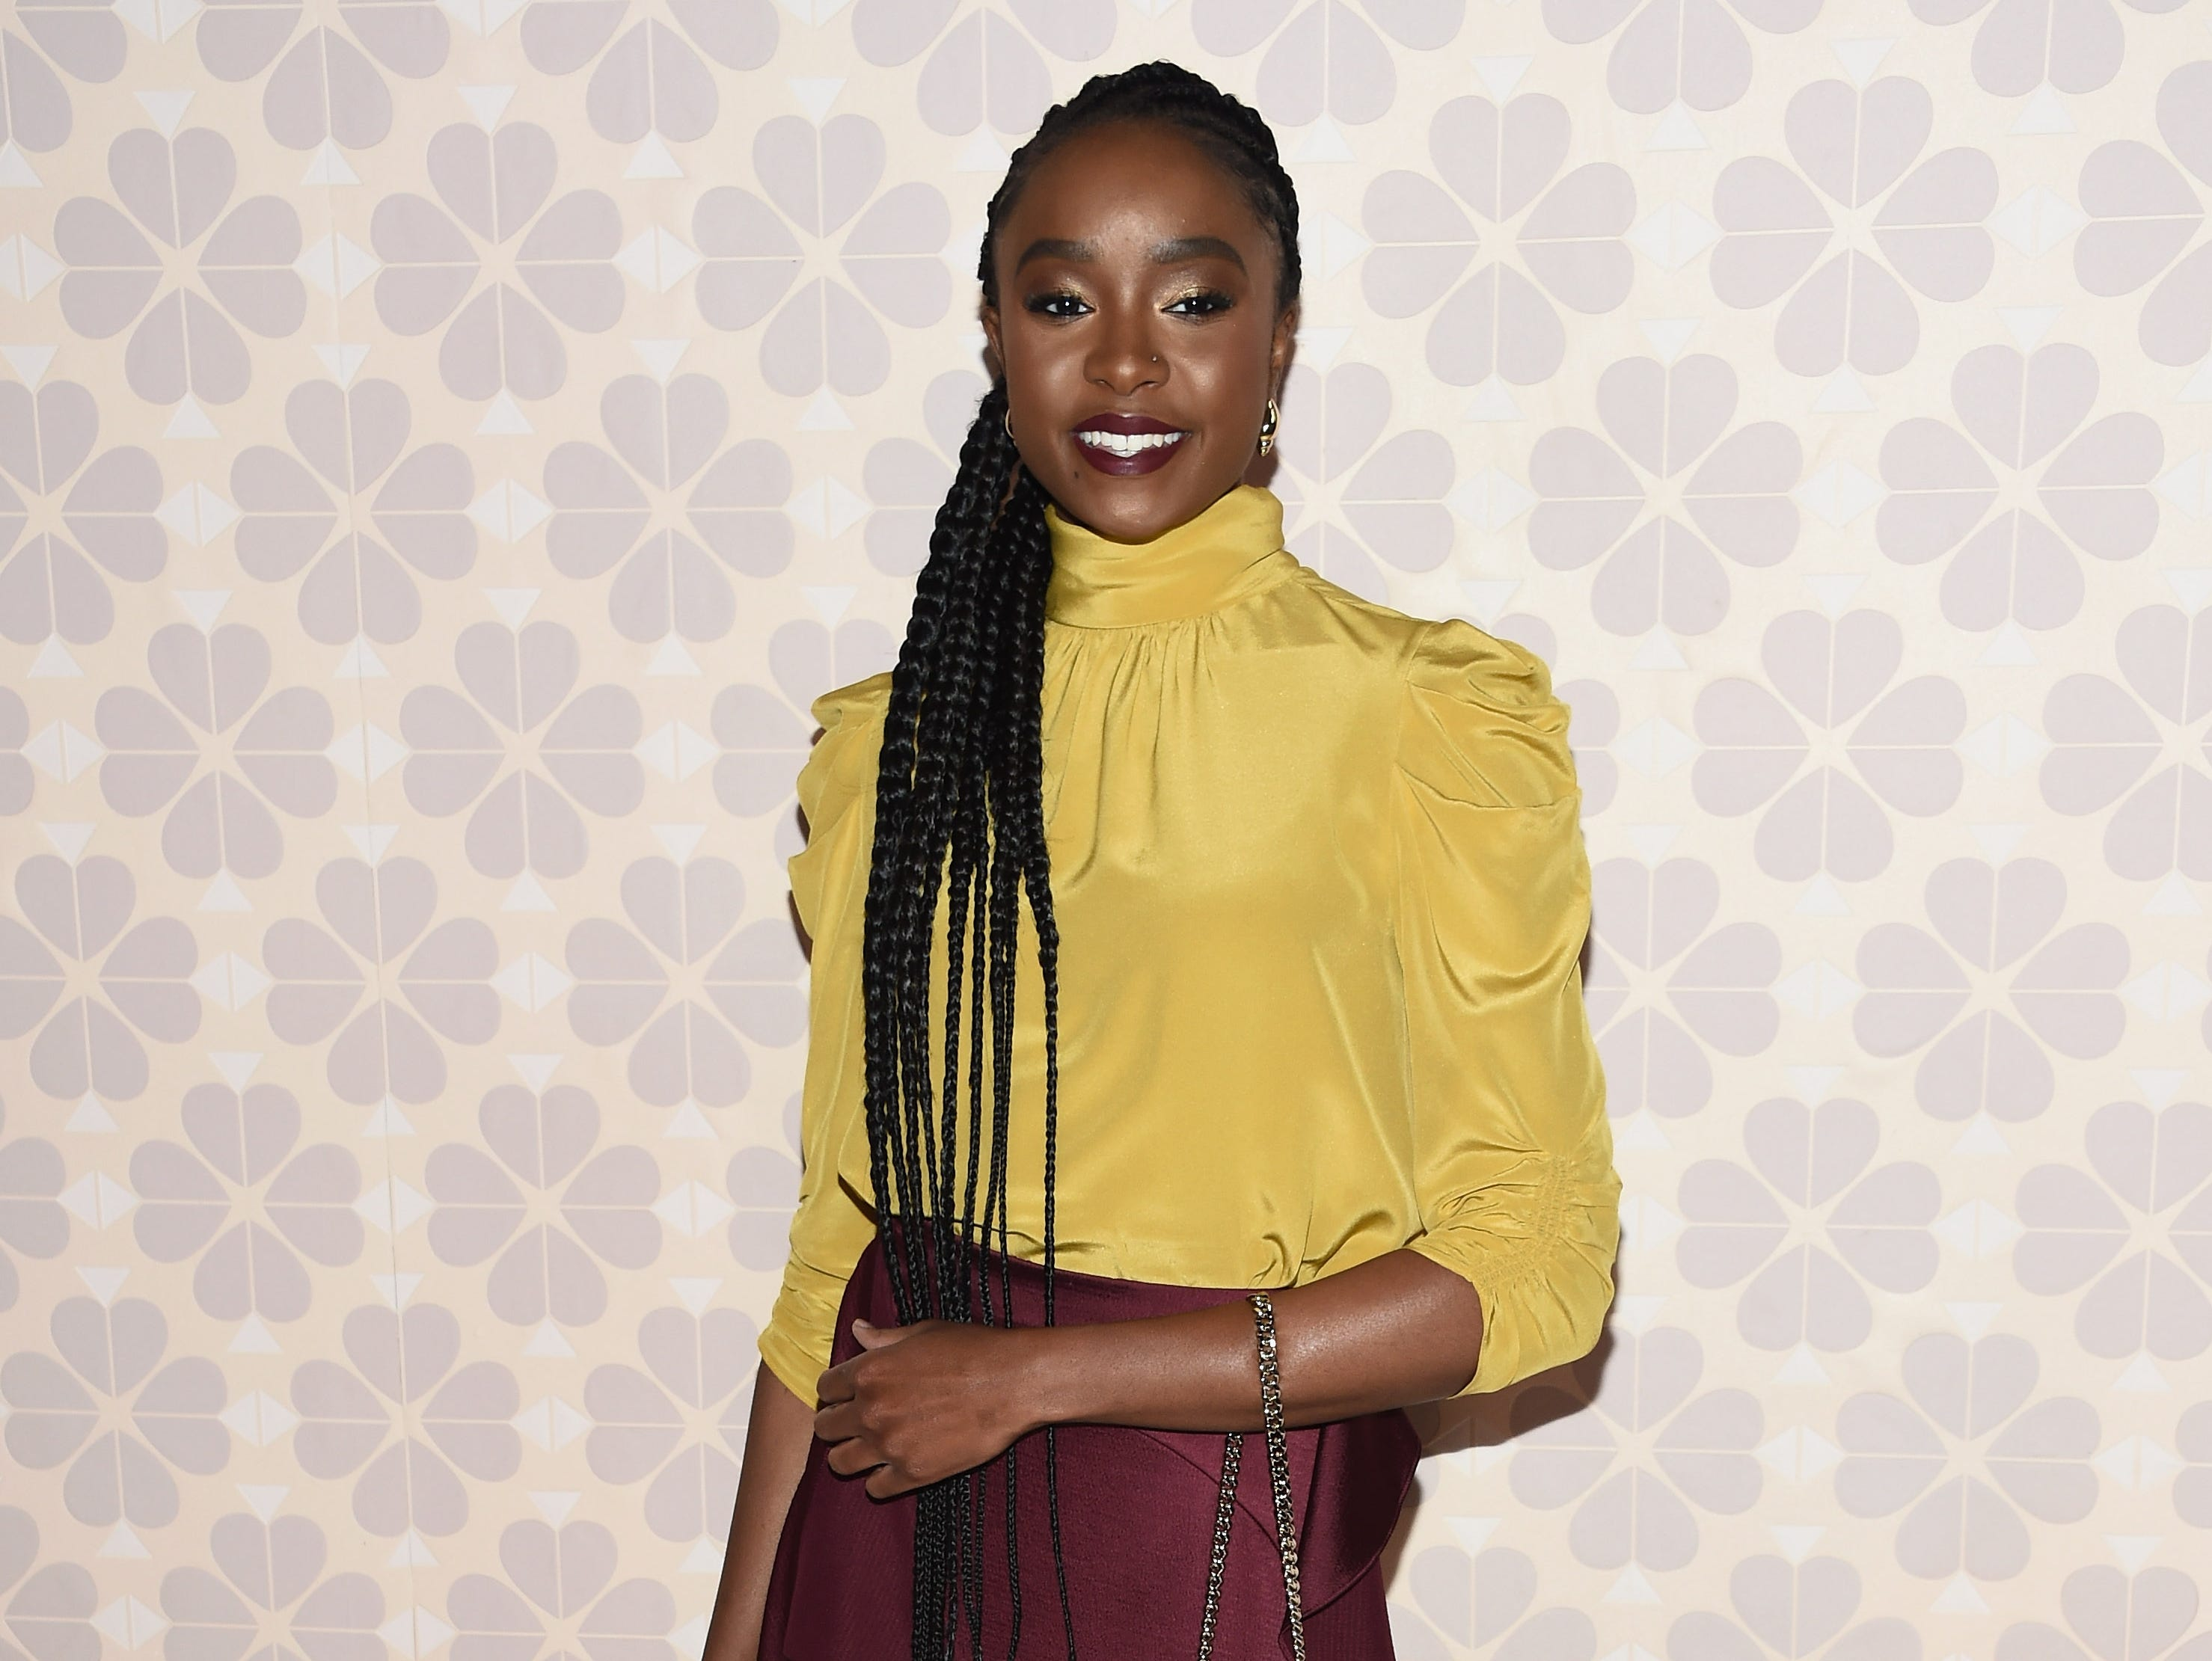 NEW YORK, NY - FEBRUARY 08:  Kiki Layne attends the Kate Spade Fashion Show during New York Fashion Week at Cipriani 25 Broadway on February 8, 2019 in New York City.  (Photo by Dimitrios Kambouris/Getty Images) ORG XMIT: 775289363 ORIG FILE ID: 1095649206